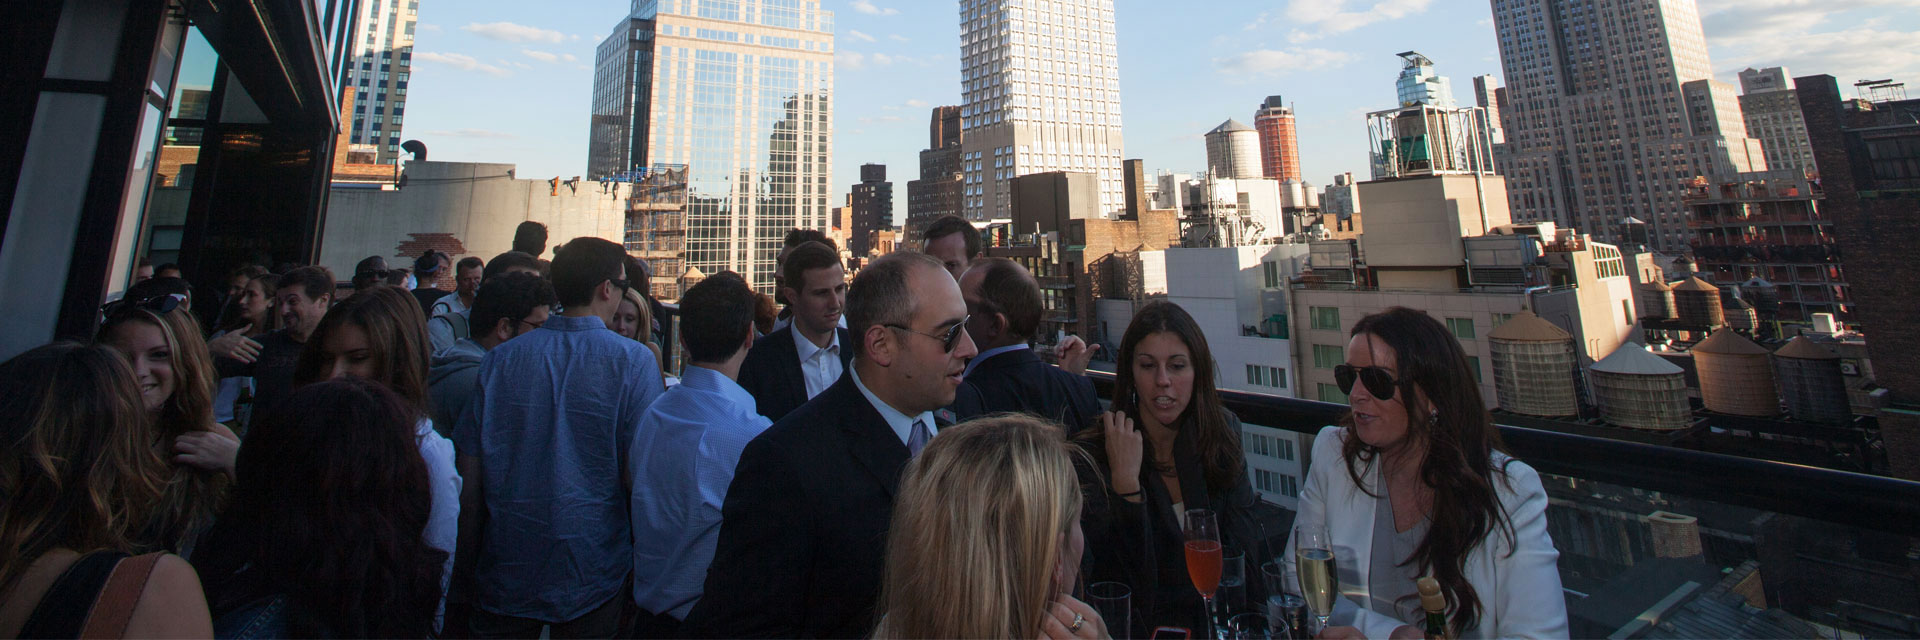 Spyglass Rooftop Bar Packed with People overlooking NYC